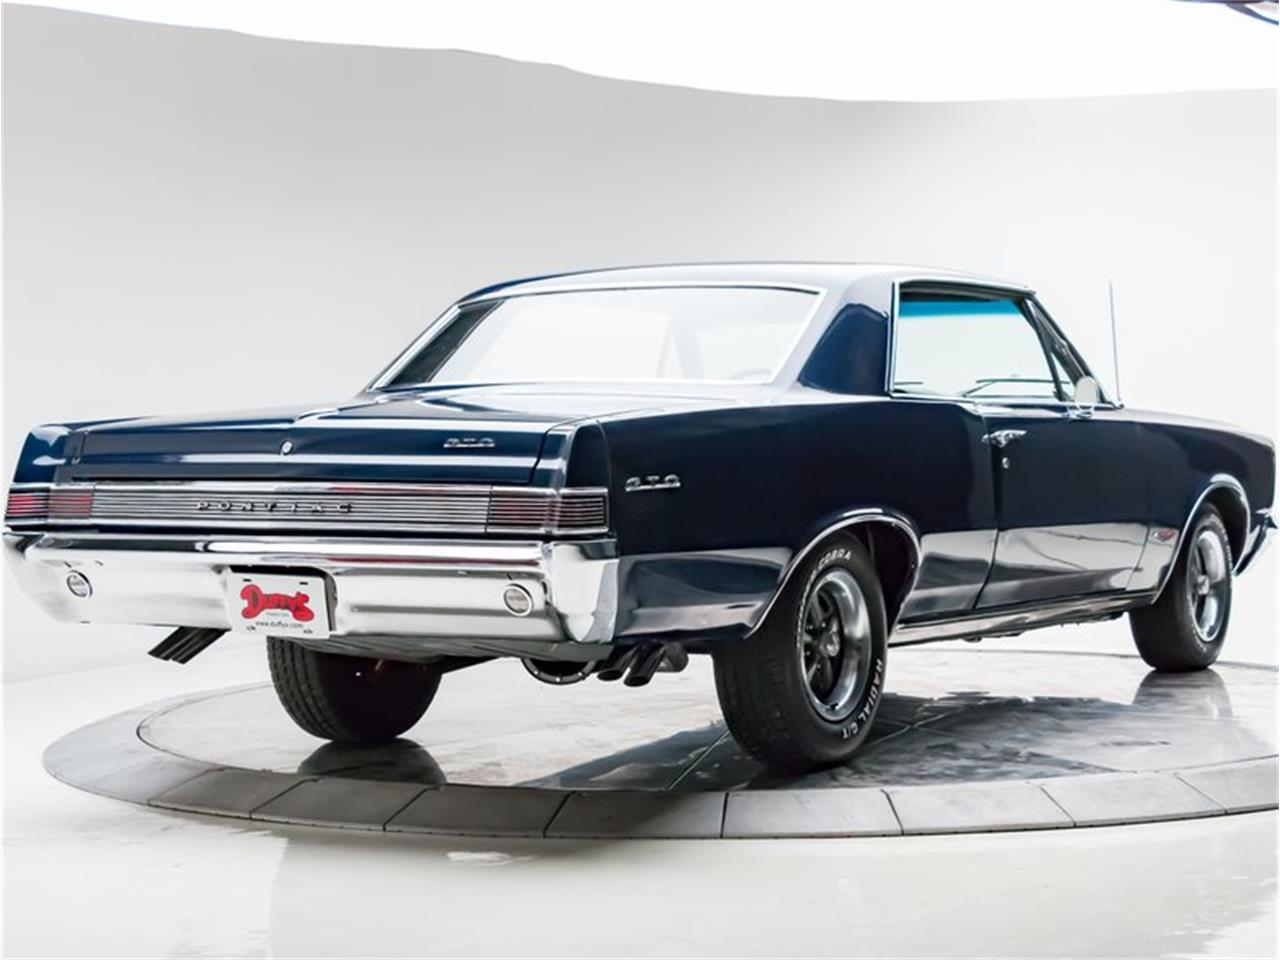 Large Picture of '65 Pontiac GTO - $37,950.00 Offered by Duffy's Classic Cars - N6UR